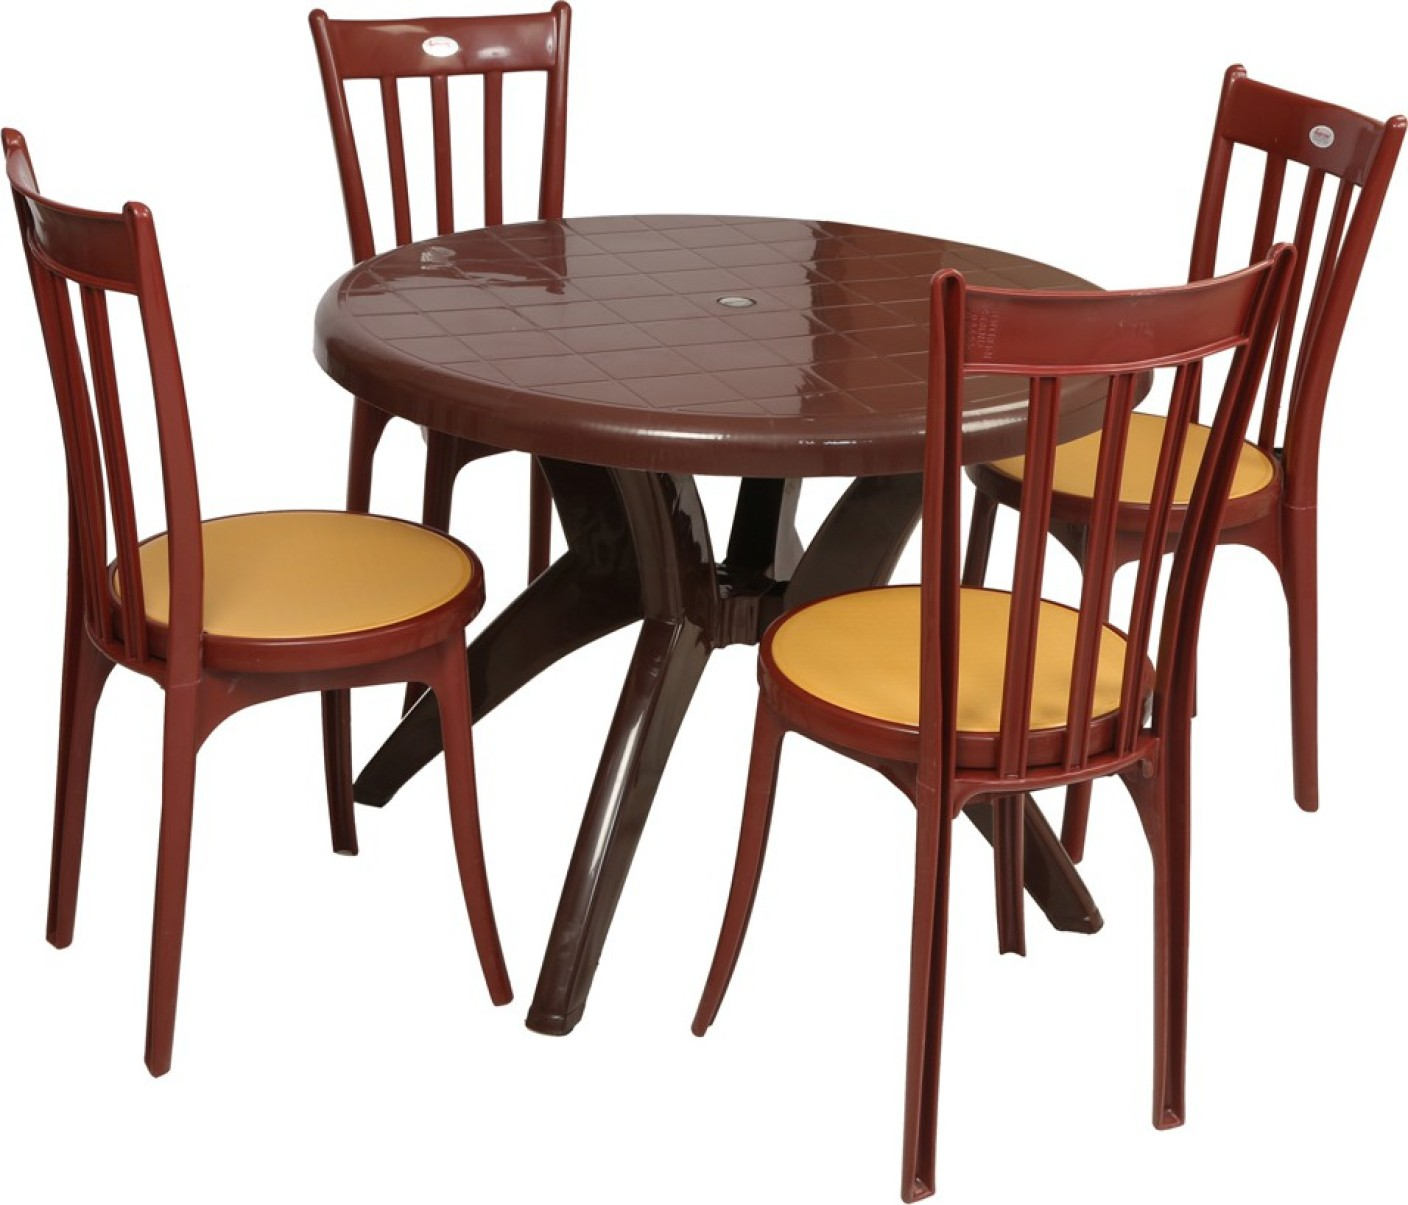 100 Teak Wood Furniture Bangalore India Buy  : antik without arm chair marina round dining table amber gold pp original imaedttfrr5z3qpt from mitzissister.com size 1408 x 1205 jpeg 187kB